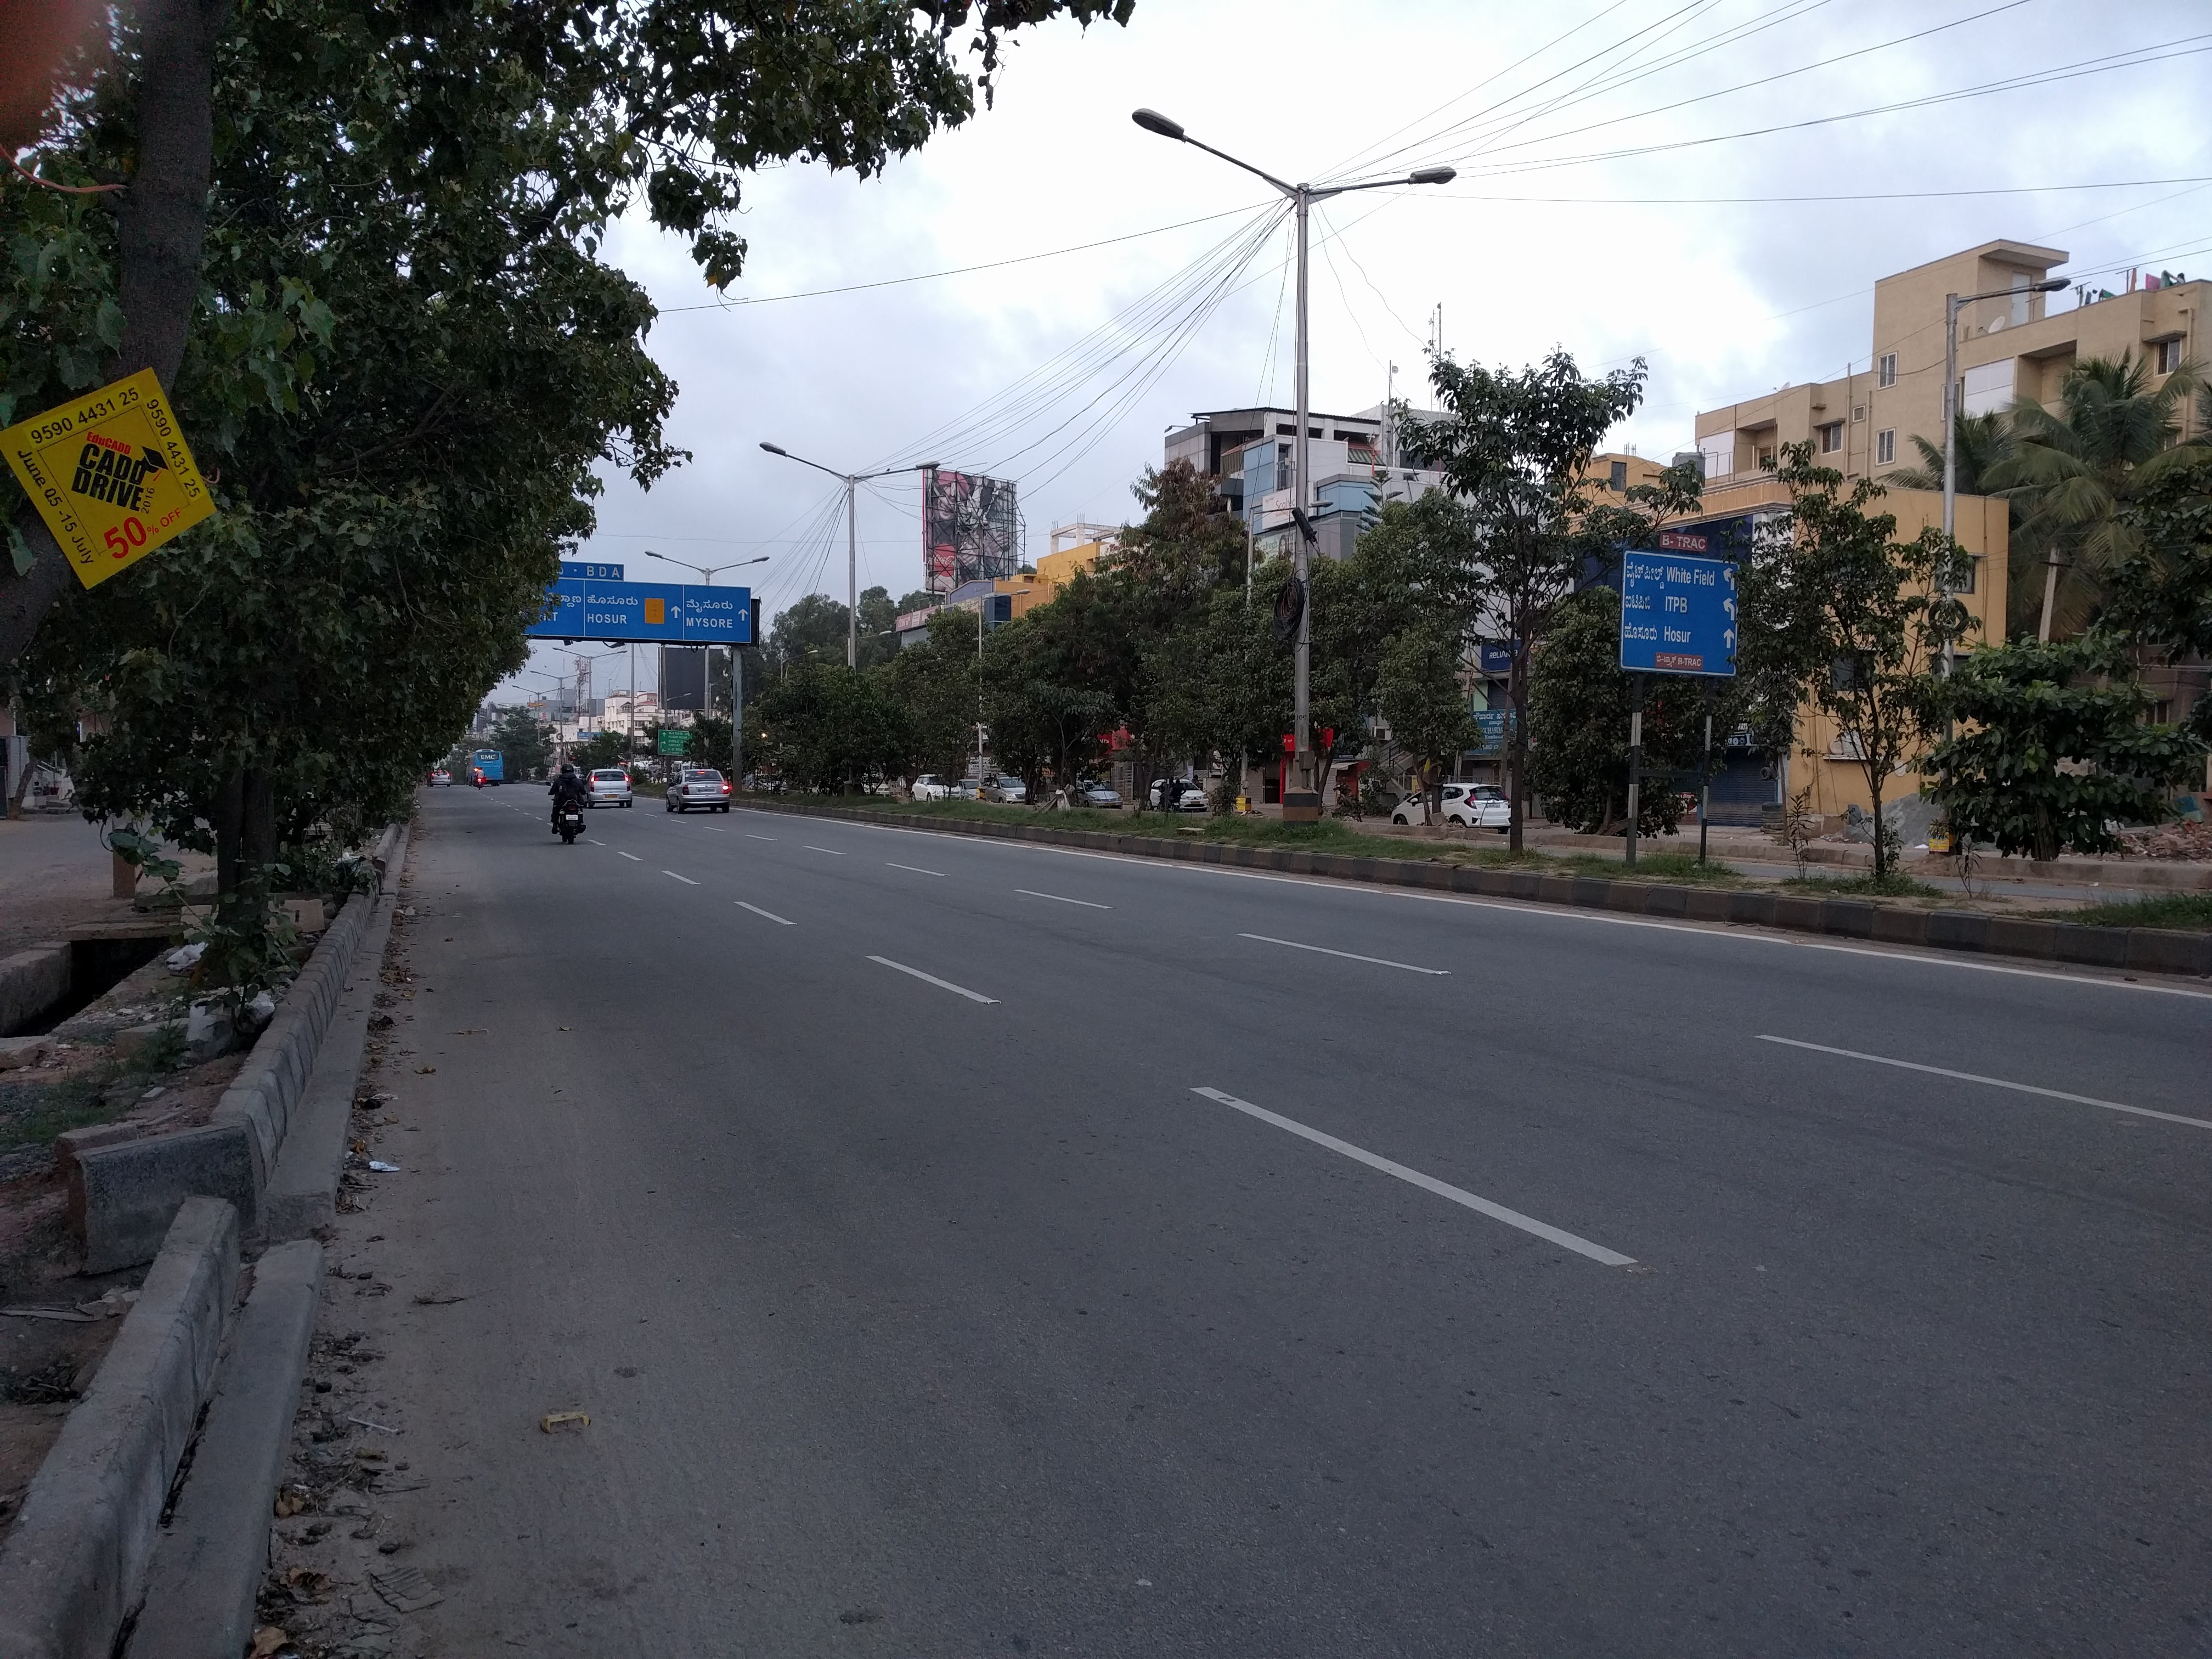 This is how one of the arterial roads look at 6:00 in the morning. In two hours the road would be crowded (and possibly jammed).